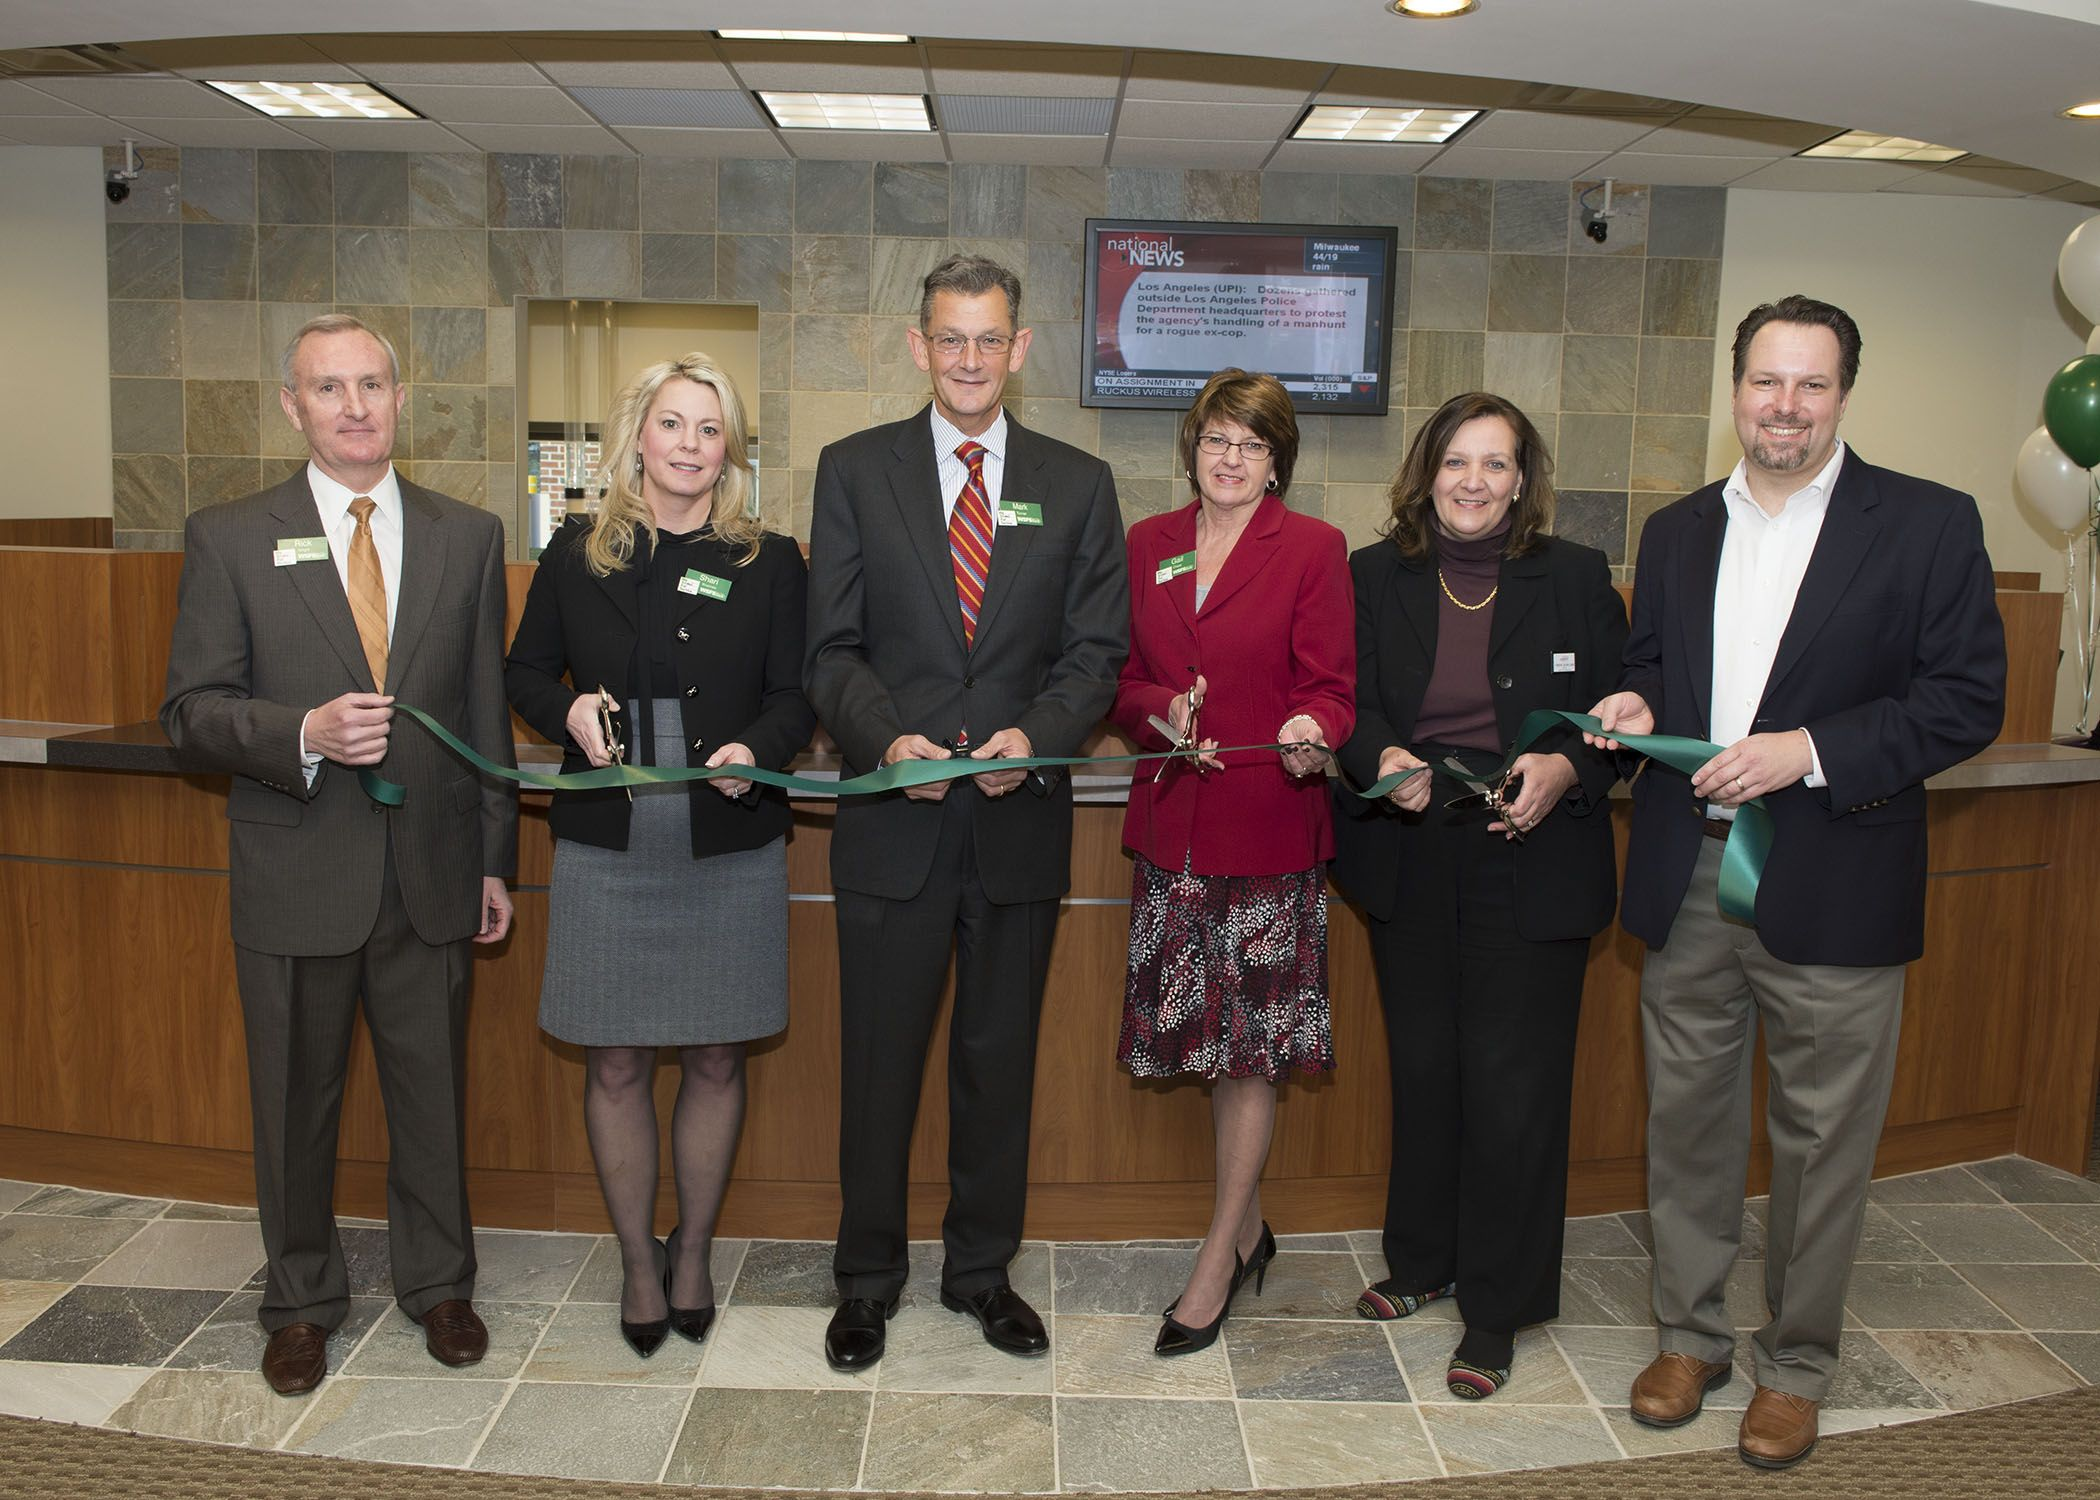 WSFS Relocates Kennett Square Banking Office